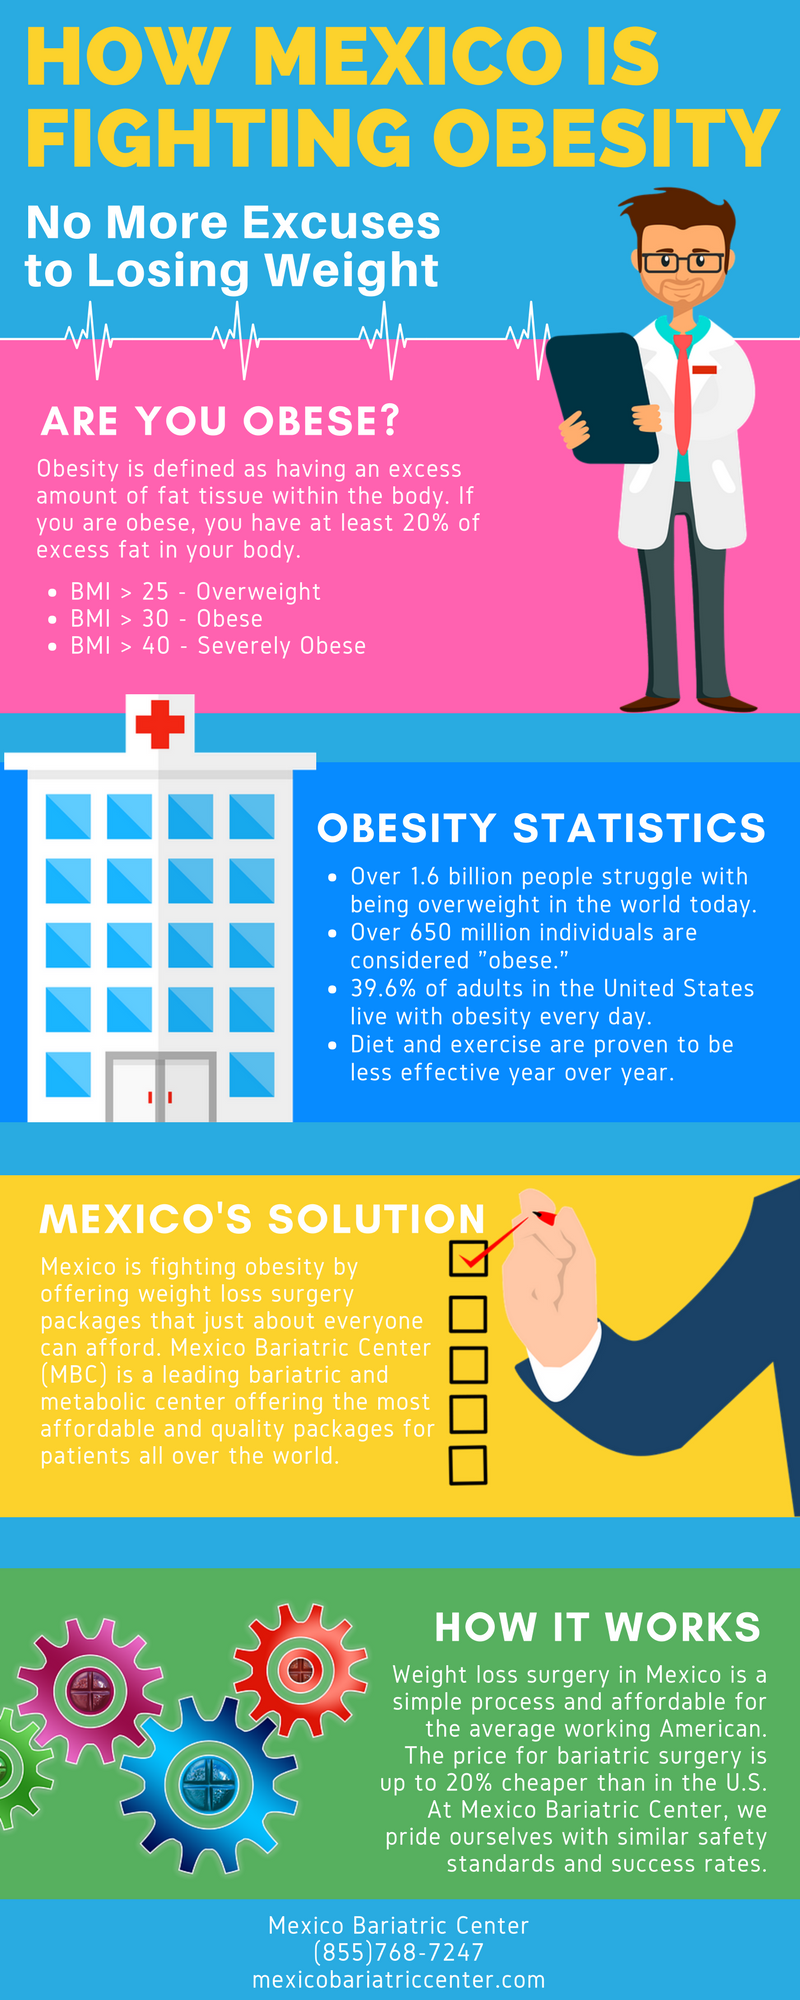 Mexico Bariatric Center How Mexico Is Fighting Obesity Newswire